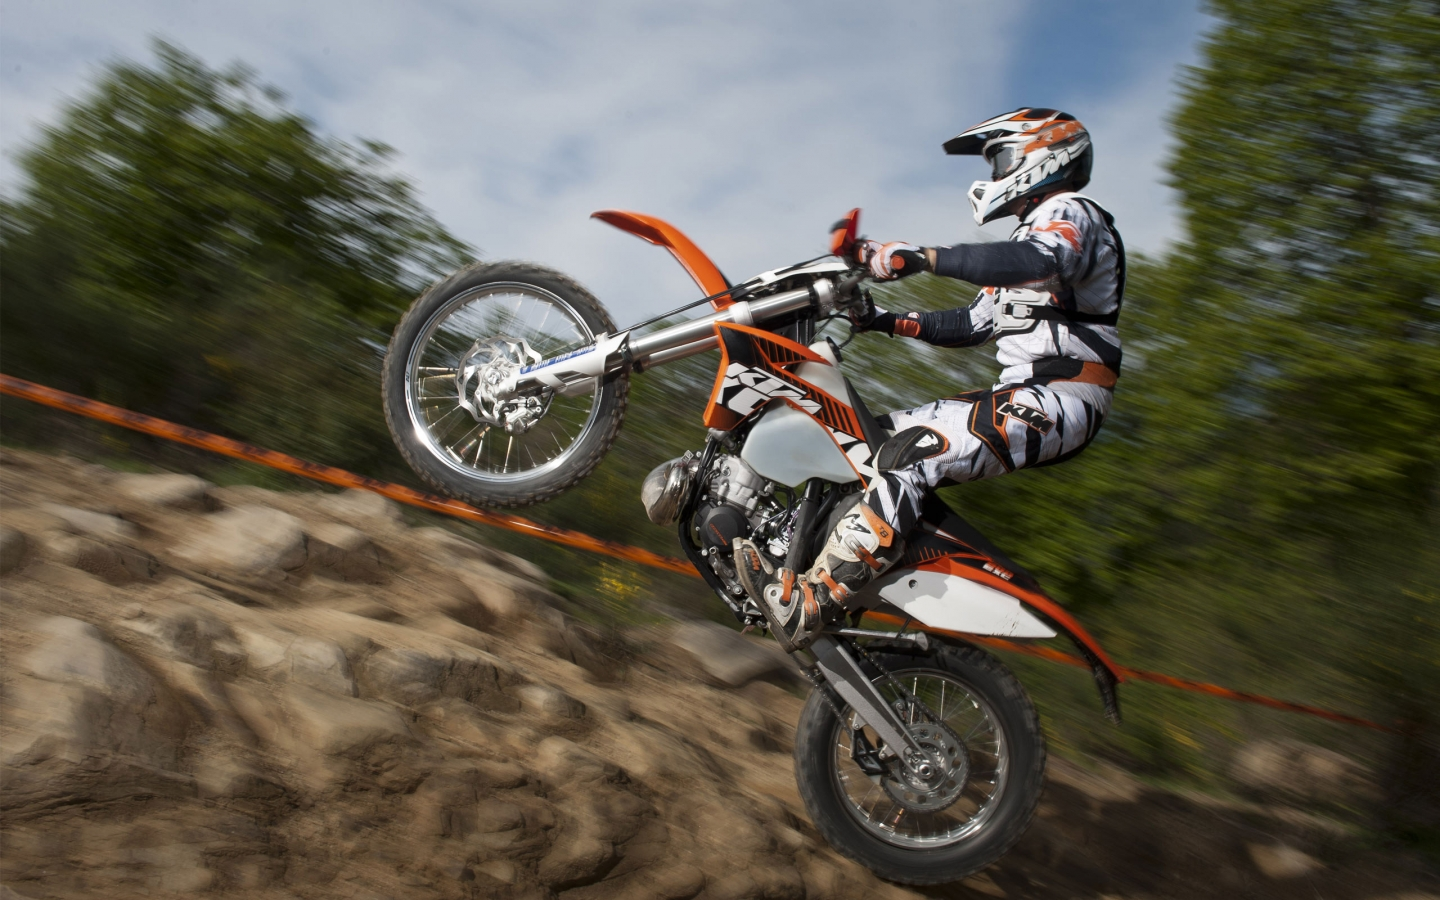 KTM EXC 200 2012 for 1440 x 900 widescreen resolution